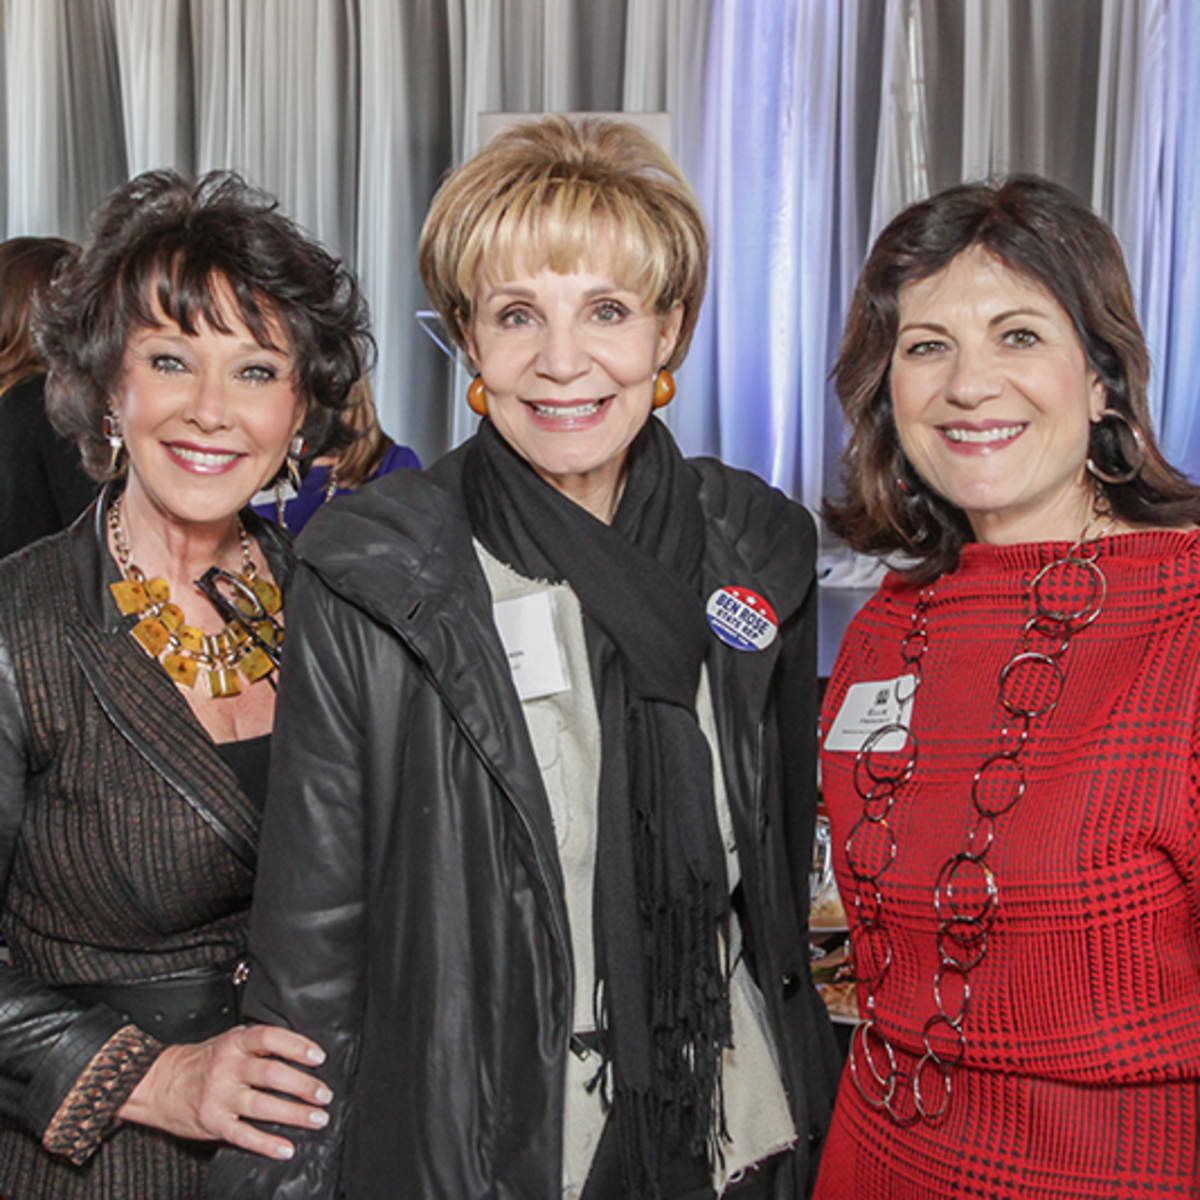 Greater Houston Women's Chamber of Commerce luncheon, Feb. 2016, Janet Flippin, Leisa Holland-nelson, Ellie Francisco